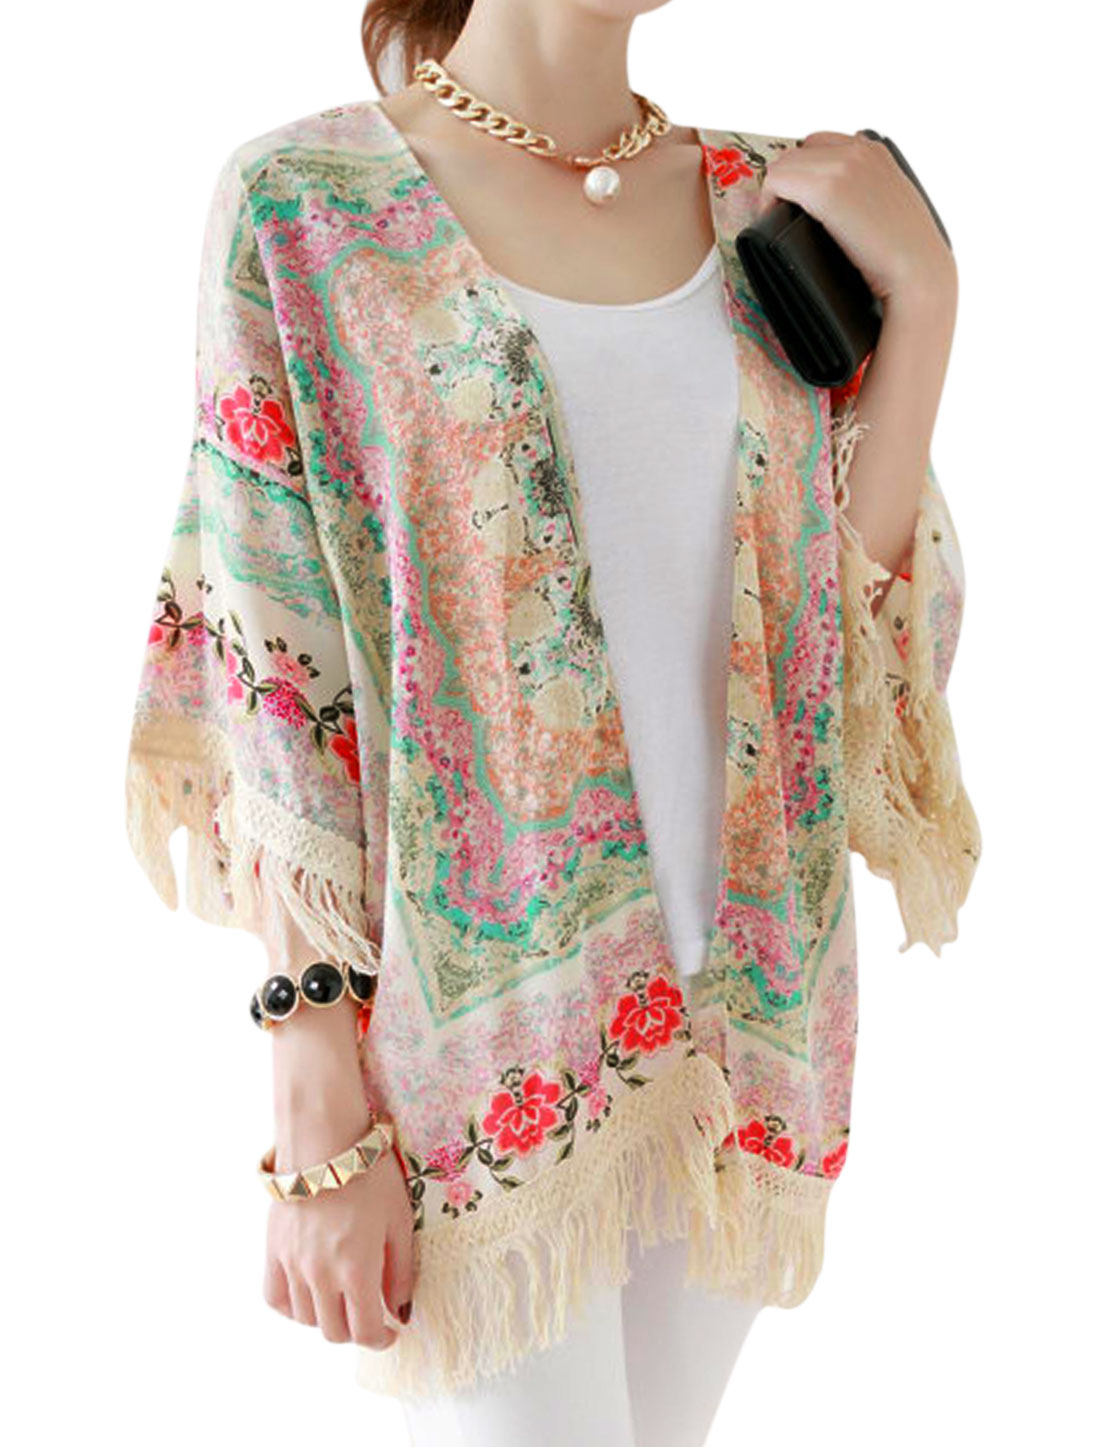 Women 3/4 Sleeves Floral Prints Front Opening Tassels Cardigan Multicolor XS